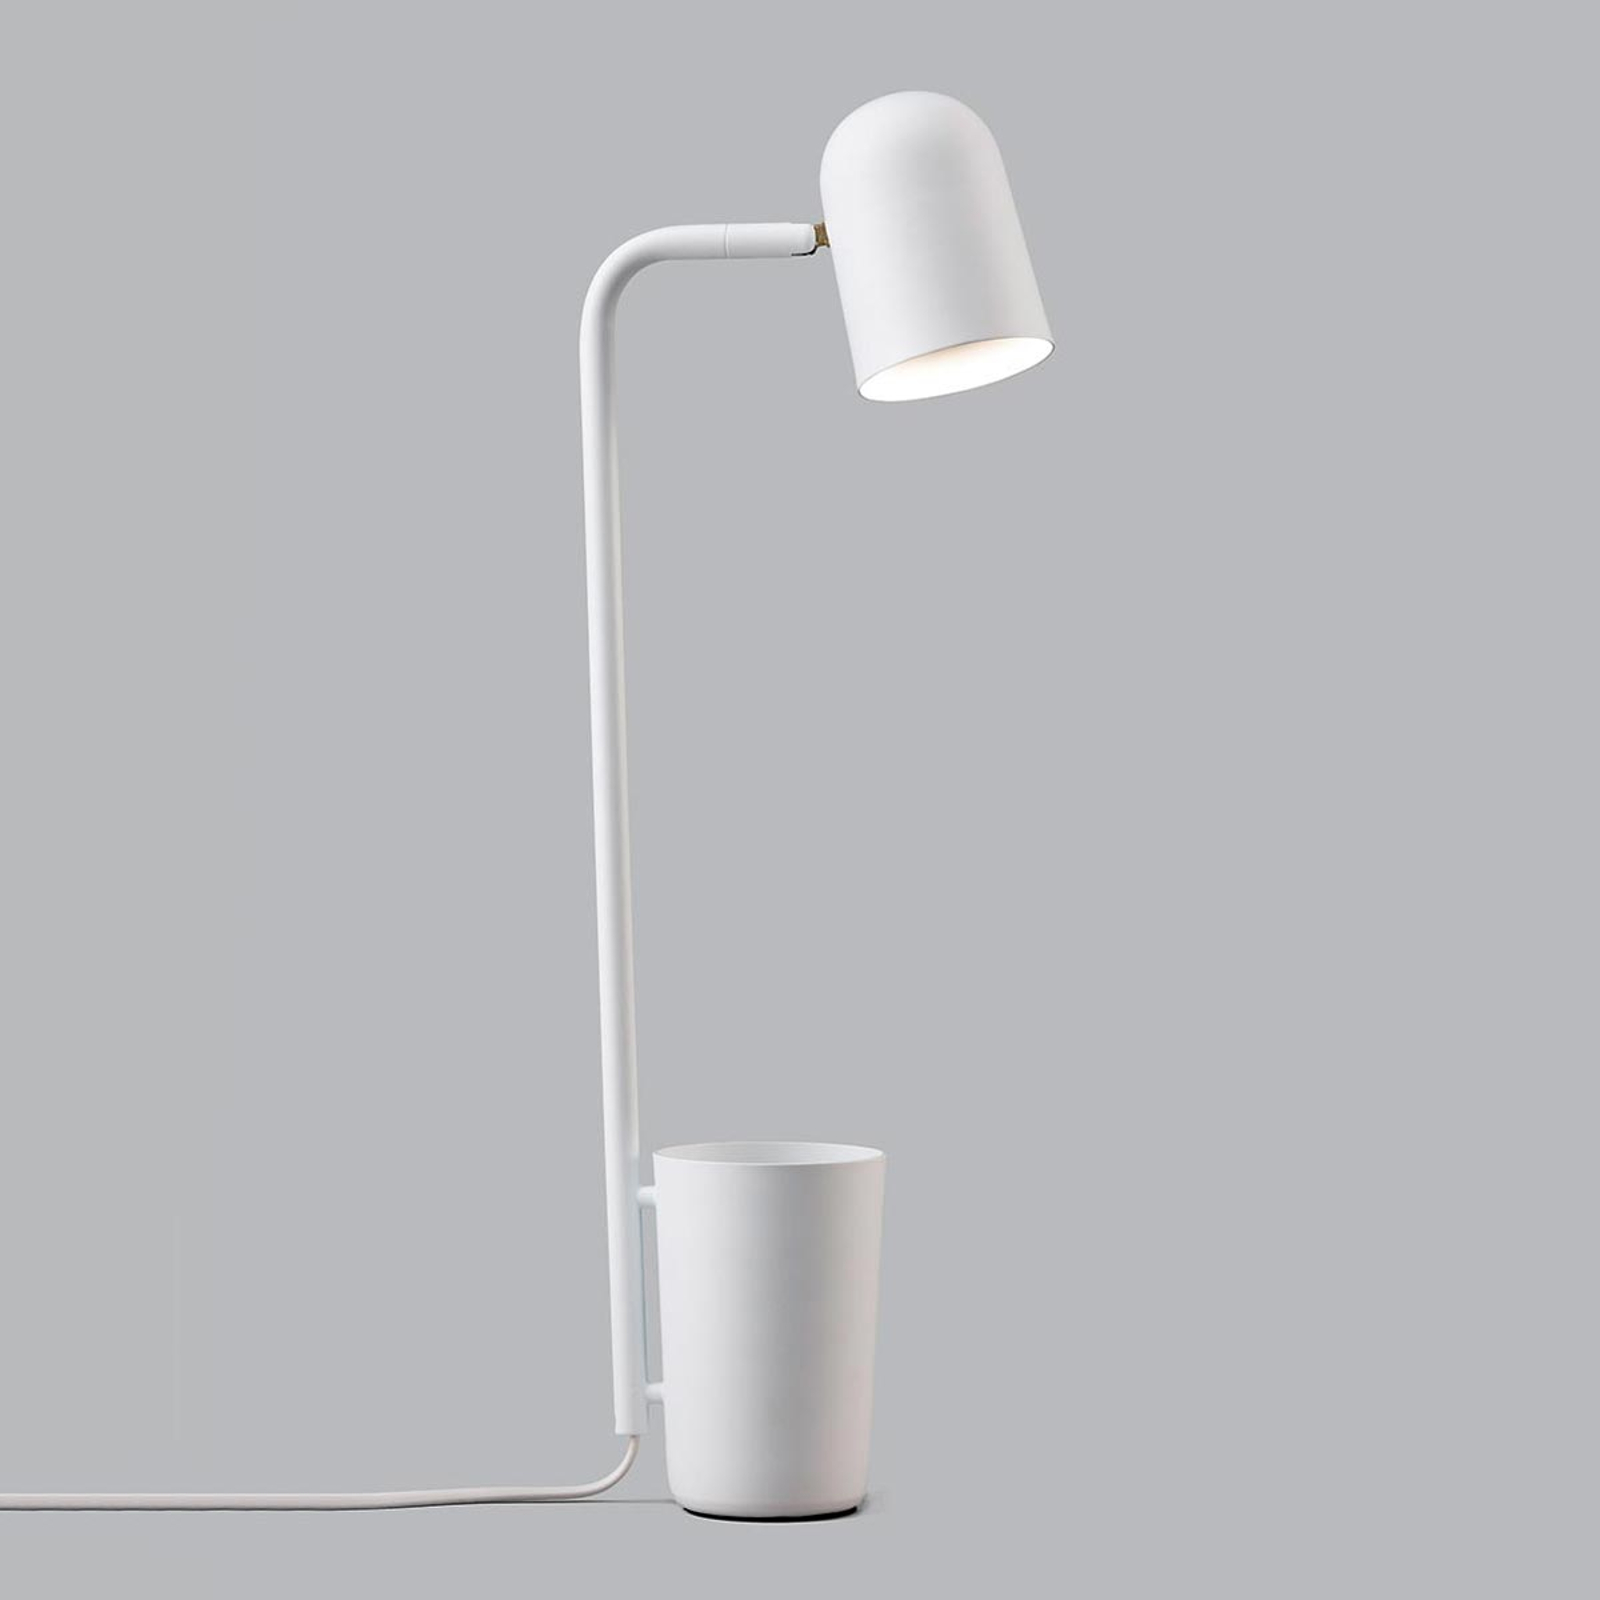 Northern Buddy - Bureaulamp, wit